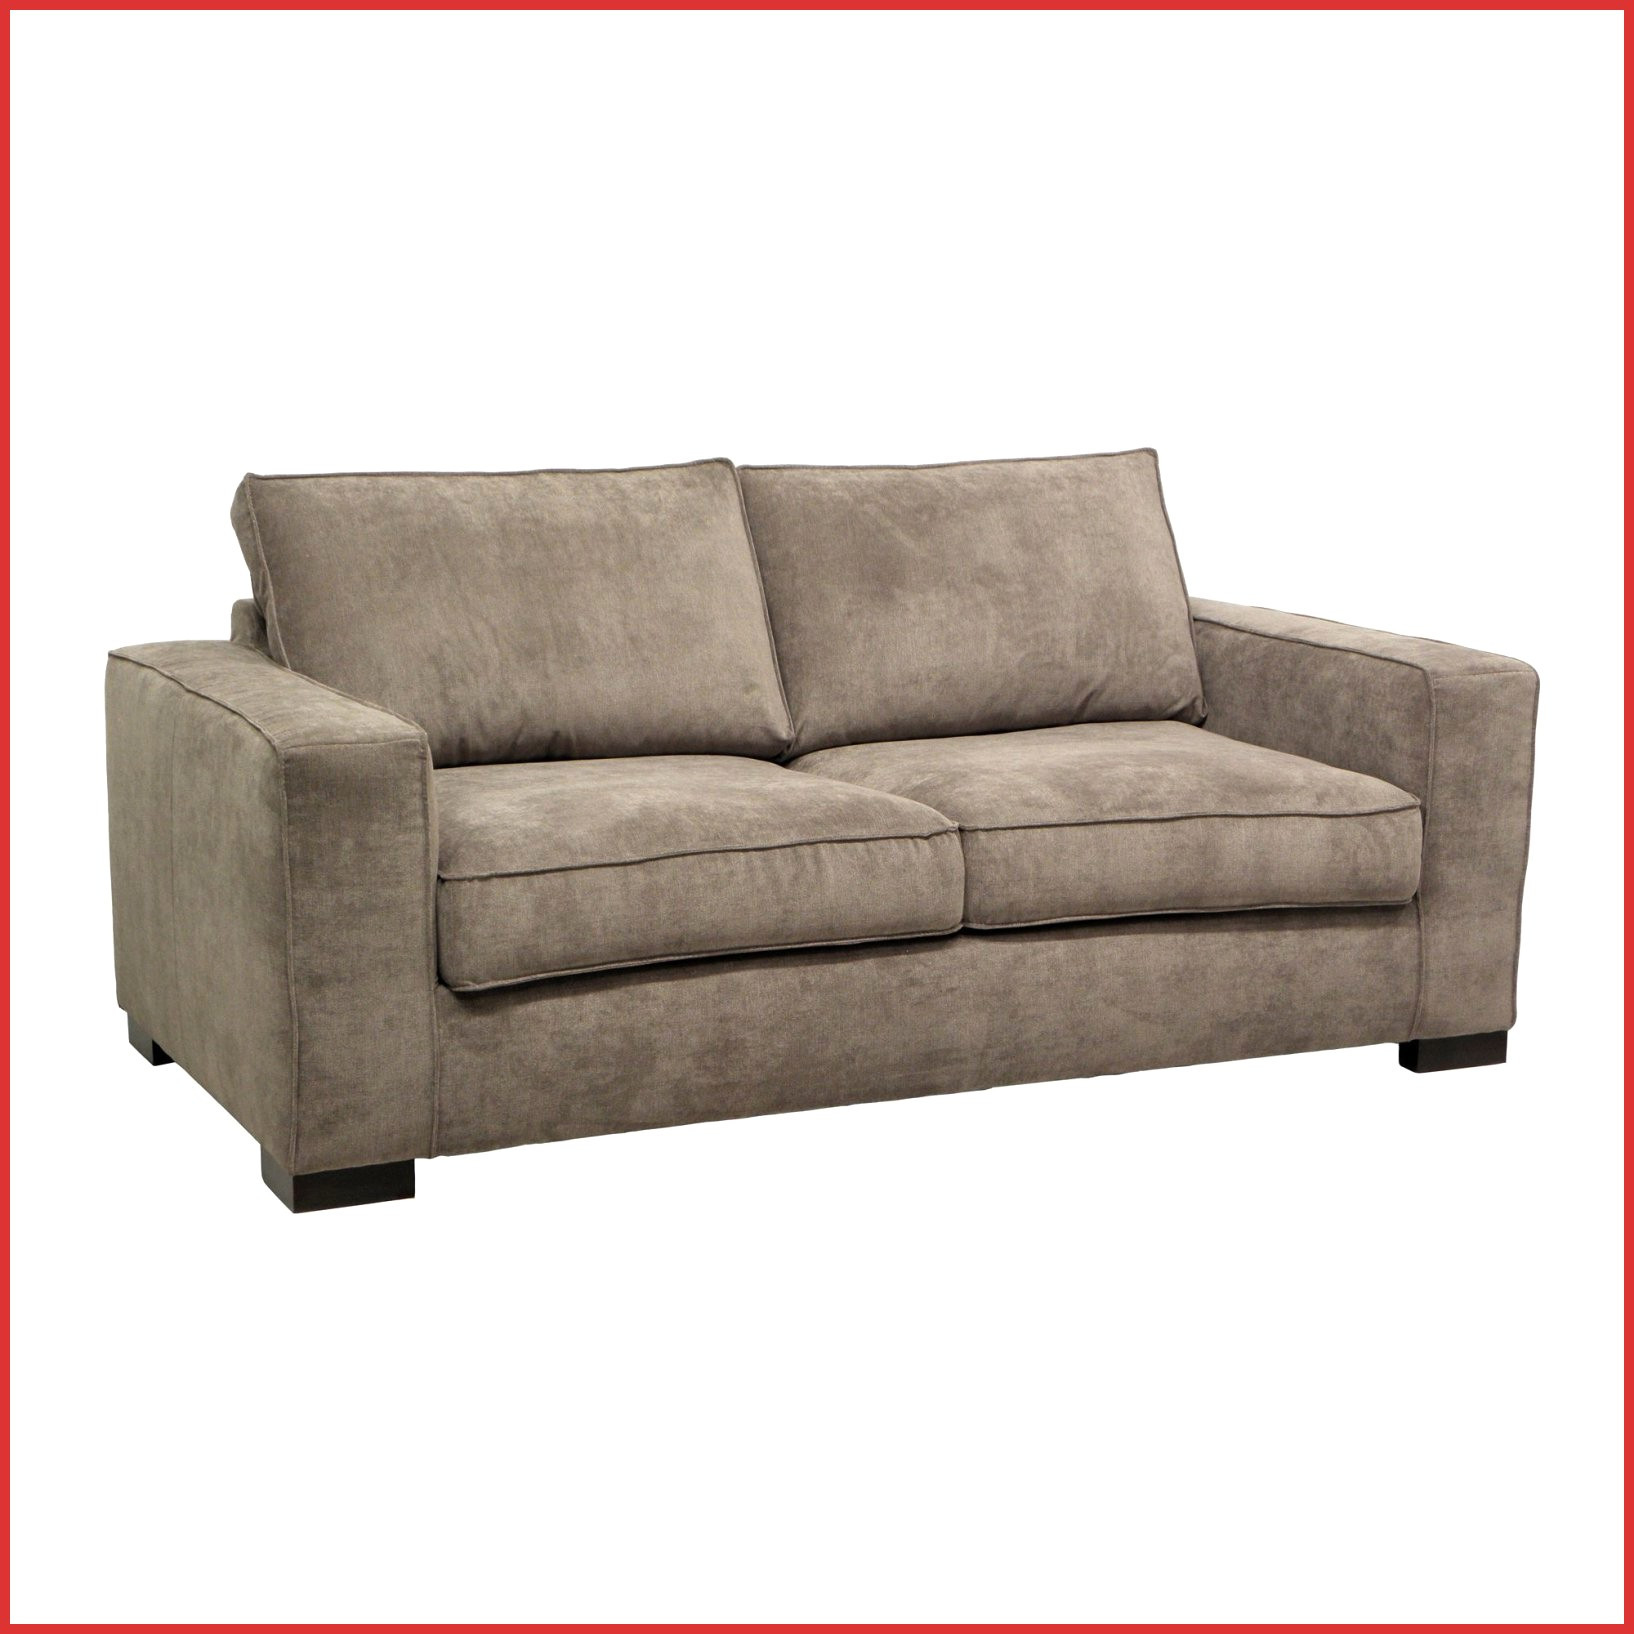 Ensemble Canape Et Fauteuil Cdiscount But Canape Relax 3 Places Awesome Canape Relaxation With But